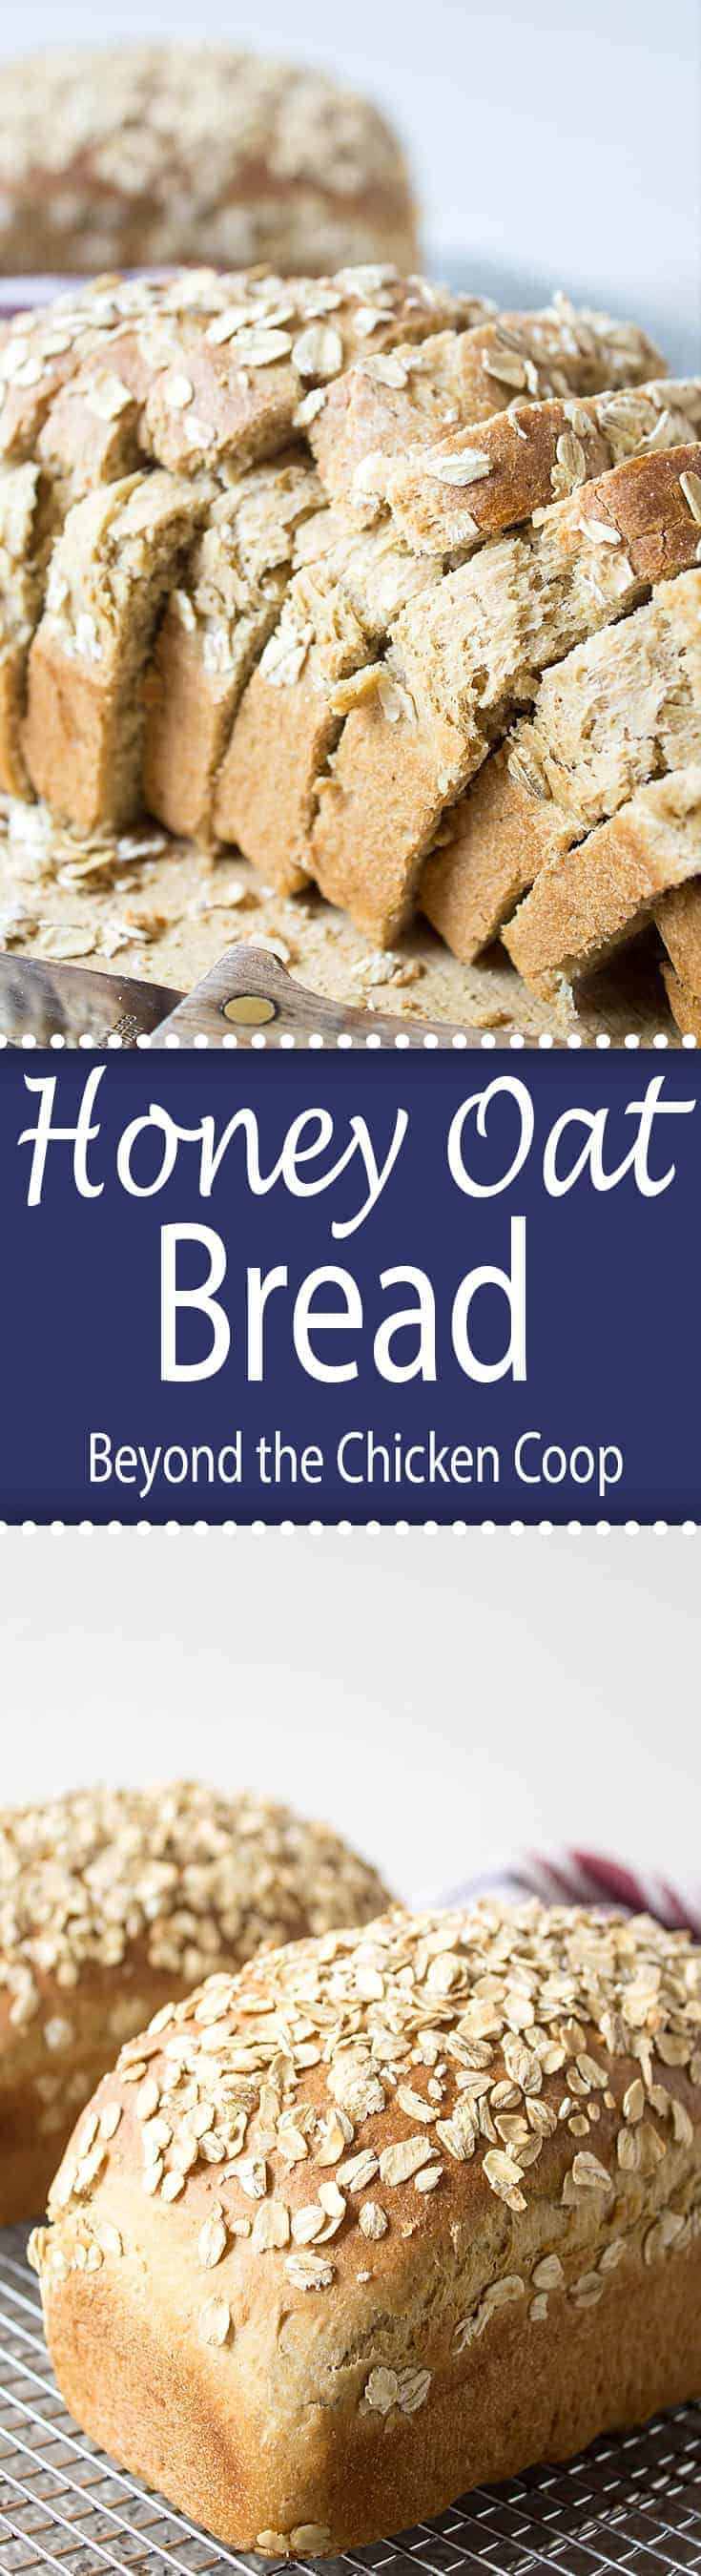 Homemade Honey Oat Bread made with oatmeal. This recipe makes two delicious loaves of bread perfect for sandwiches or for toast. #bread #homemadebread #honeyoat #baking